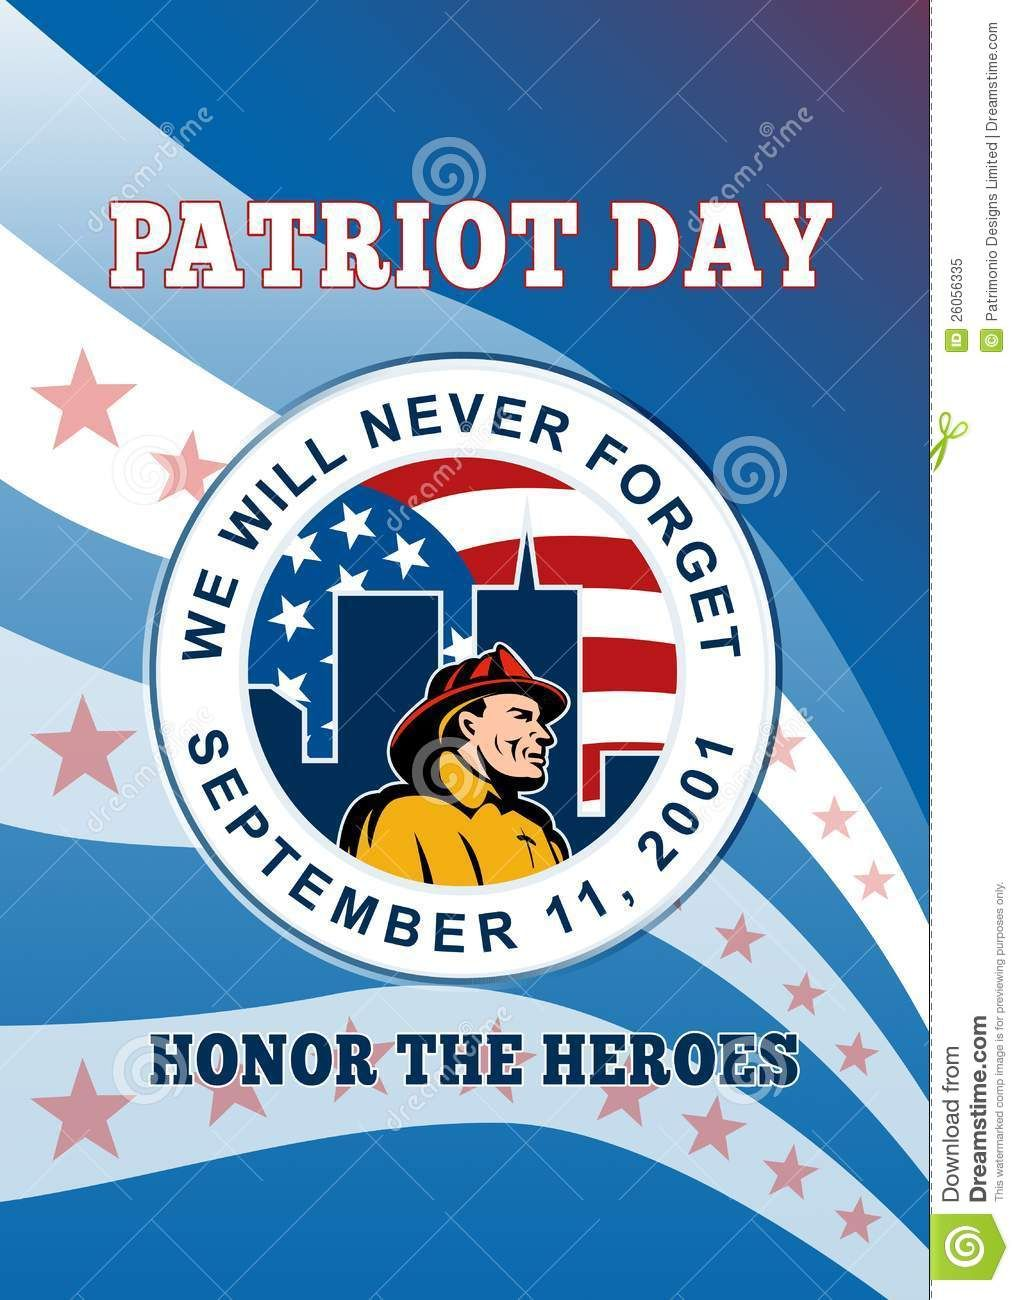 Patriot Day poster featuring a firefighter